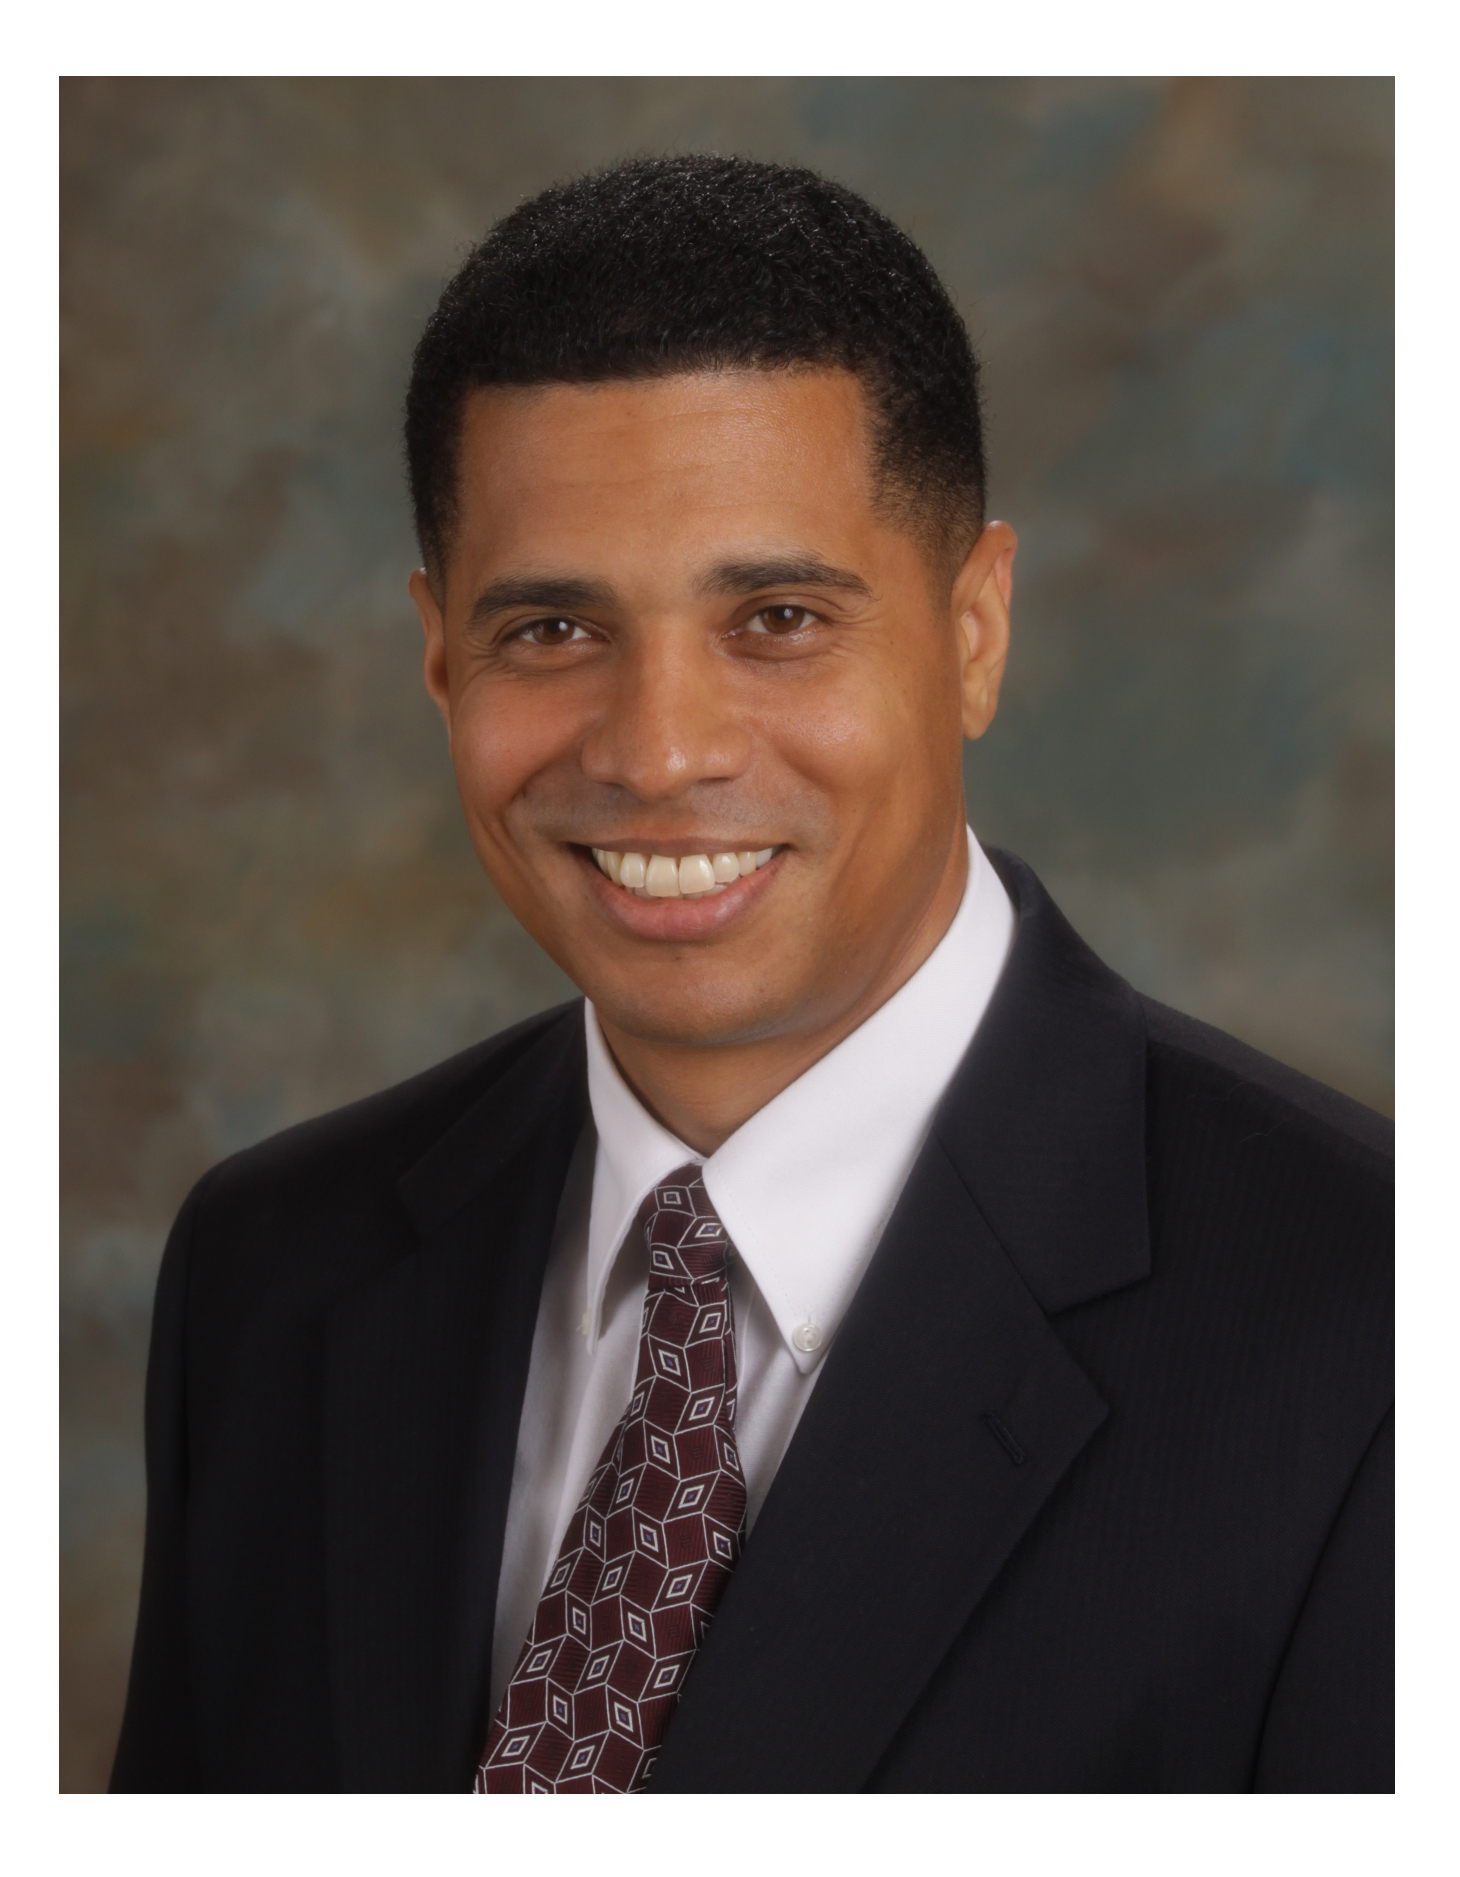 Marcus Chambers, Superintendent of Schools